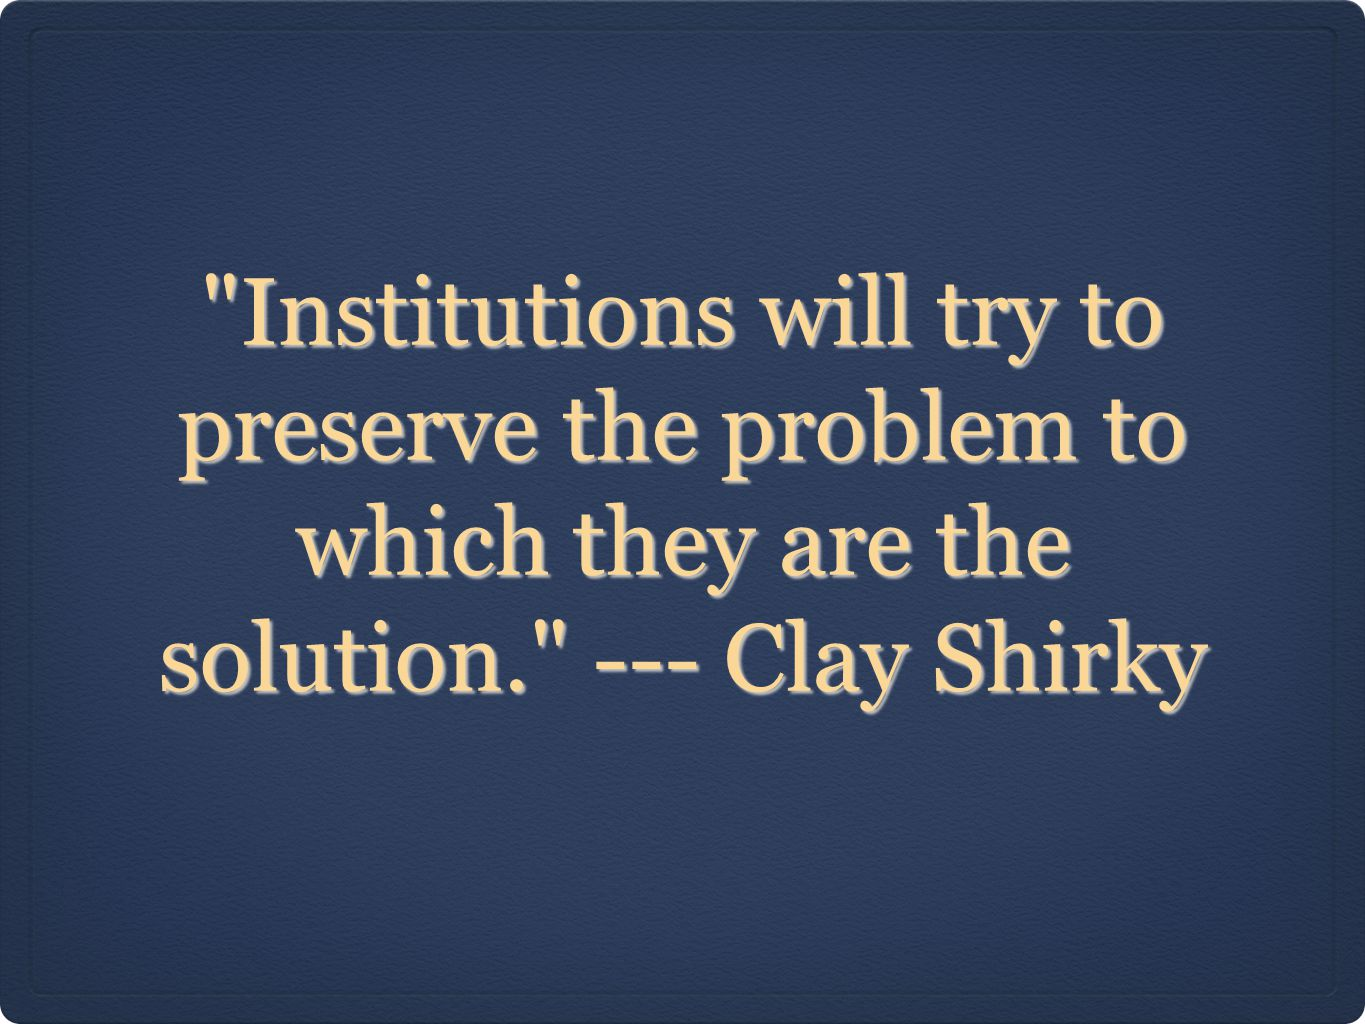 Institutions will try to preserve the problem to which they are the solution. --- Clay Shirky